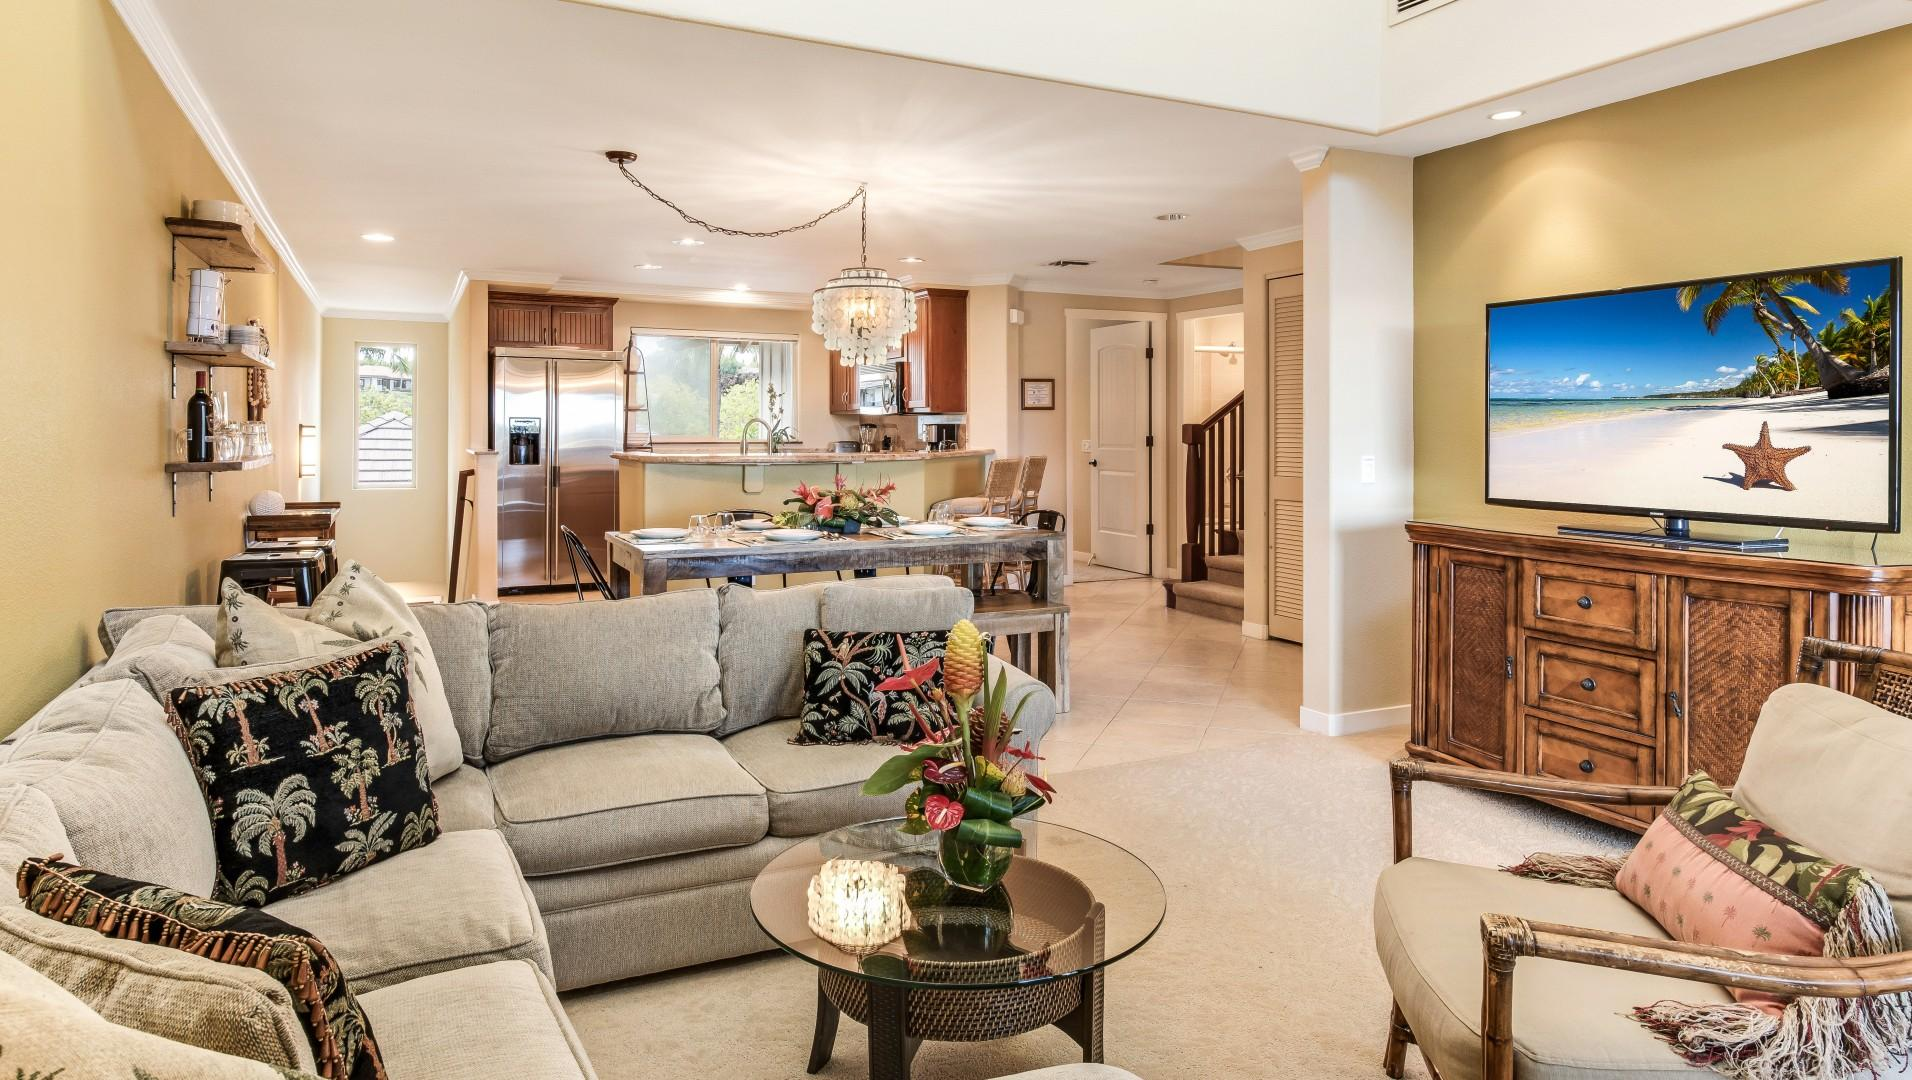 Open Floor Plan Encompassing Living Room, Dining for Seven and Kitchen w/ Bar